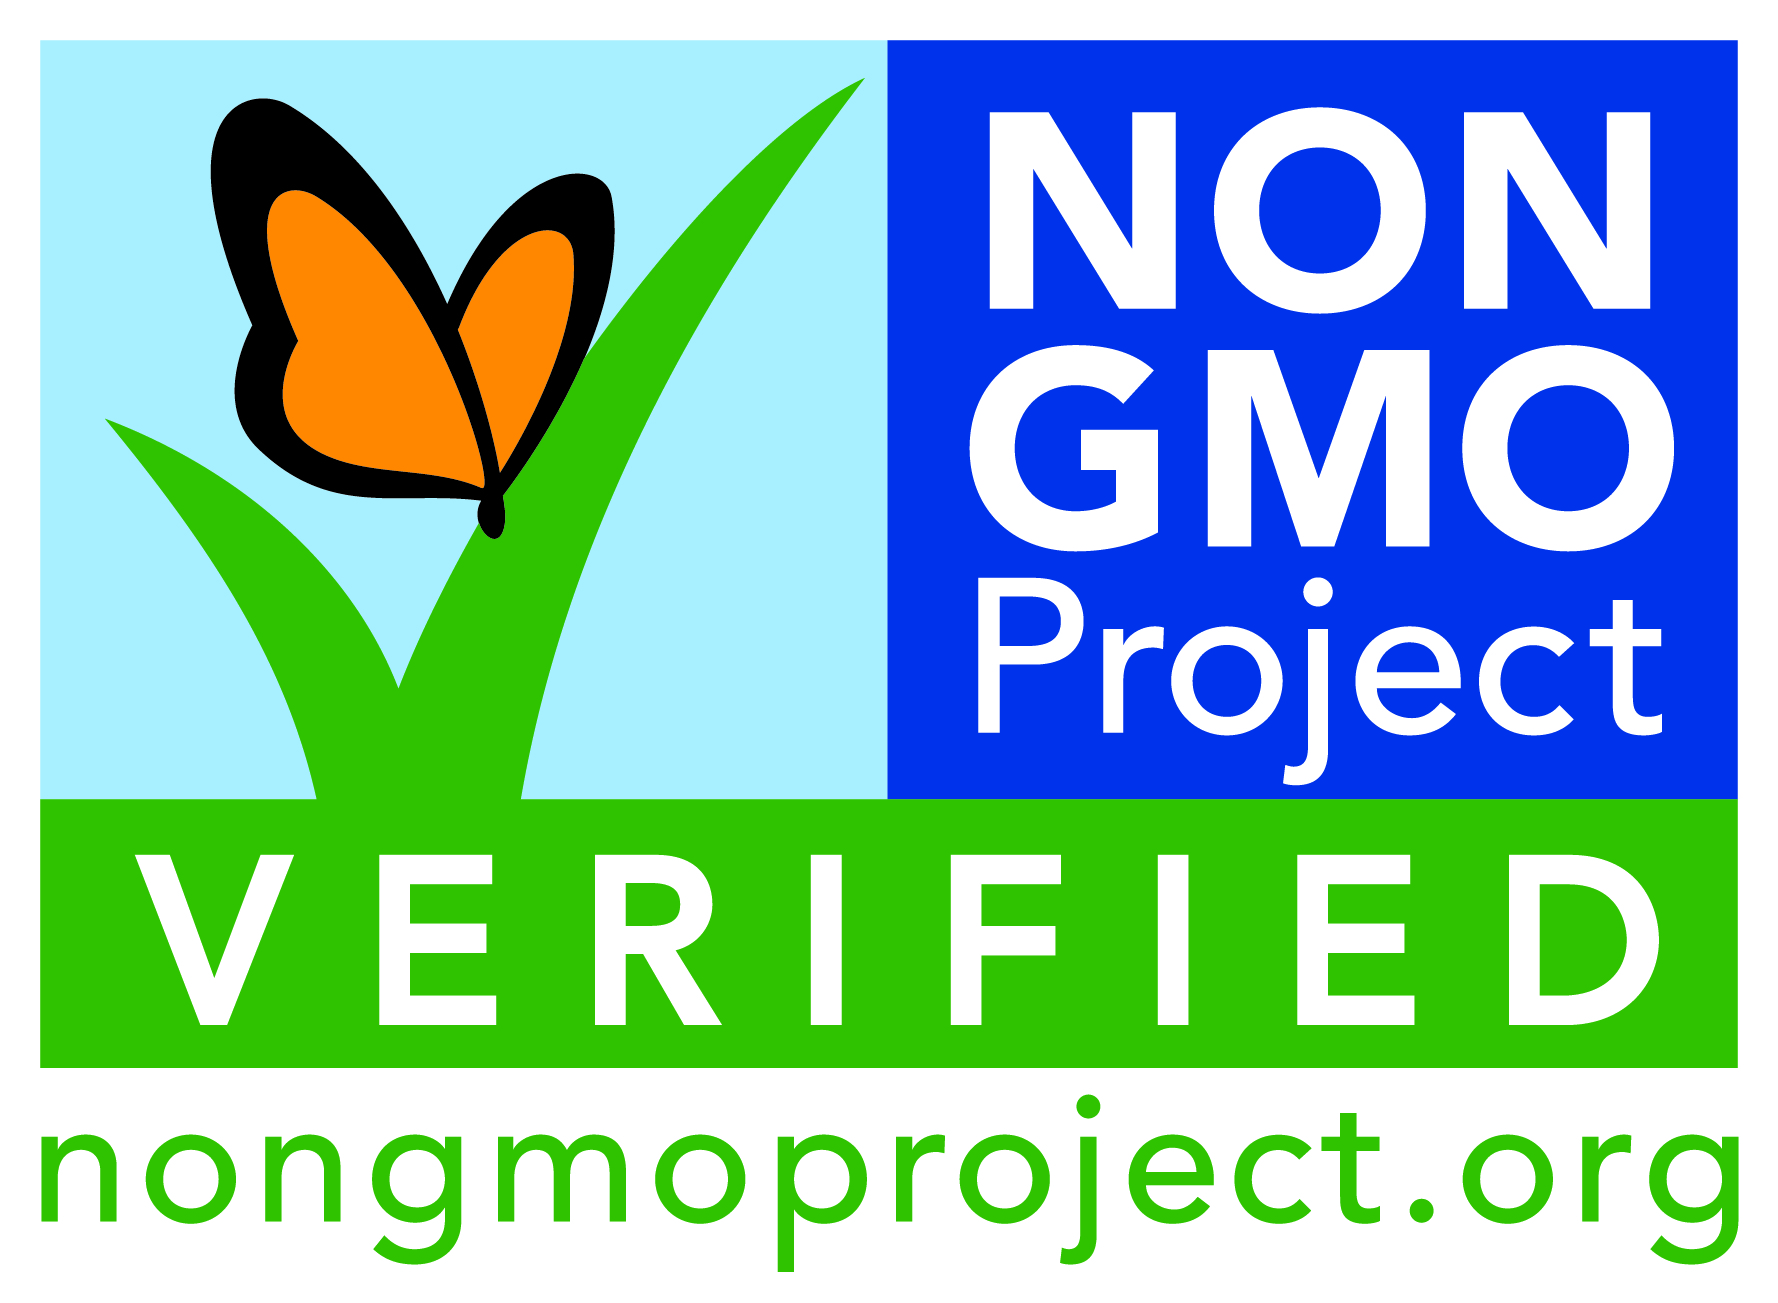 Profi® is now Non-GMO Project Verified!